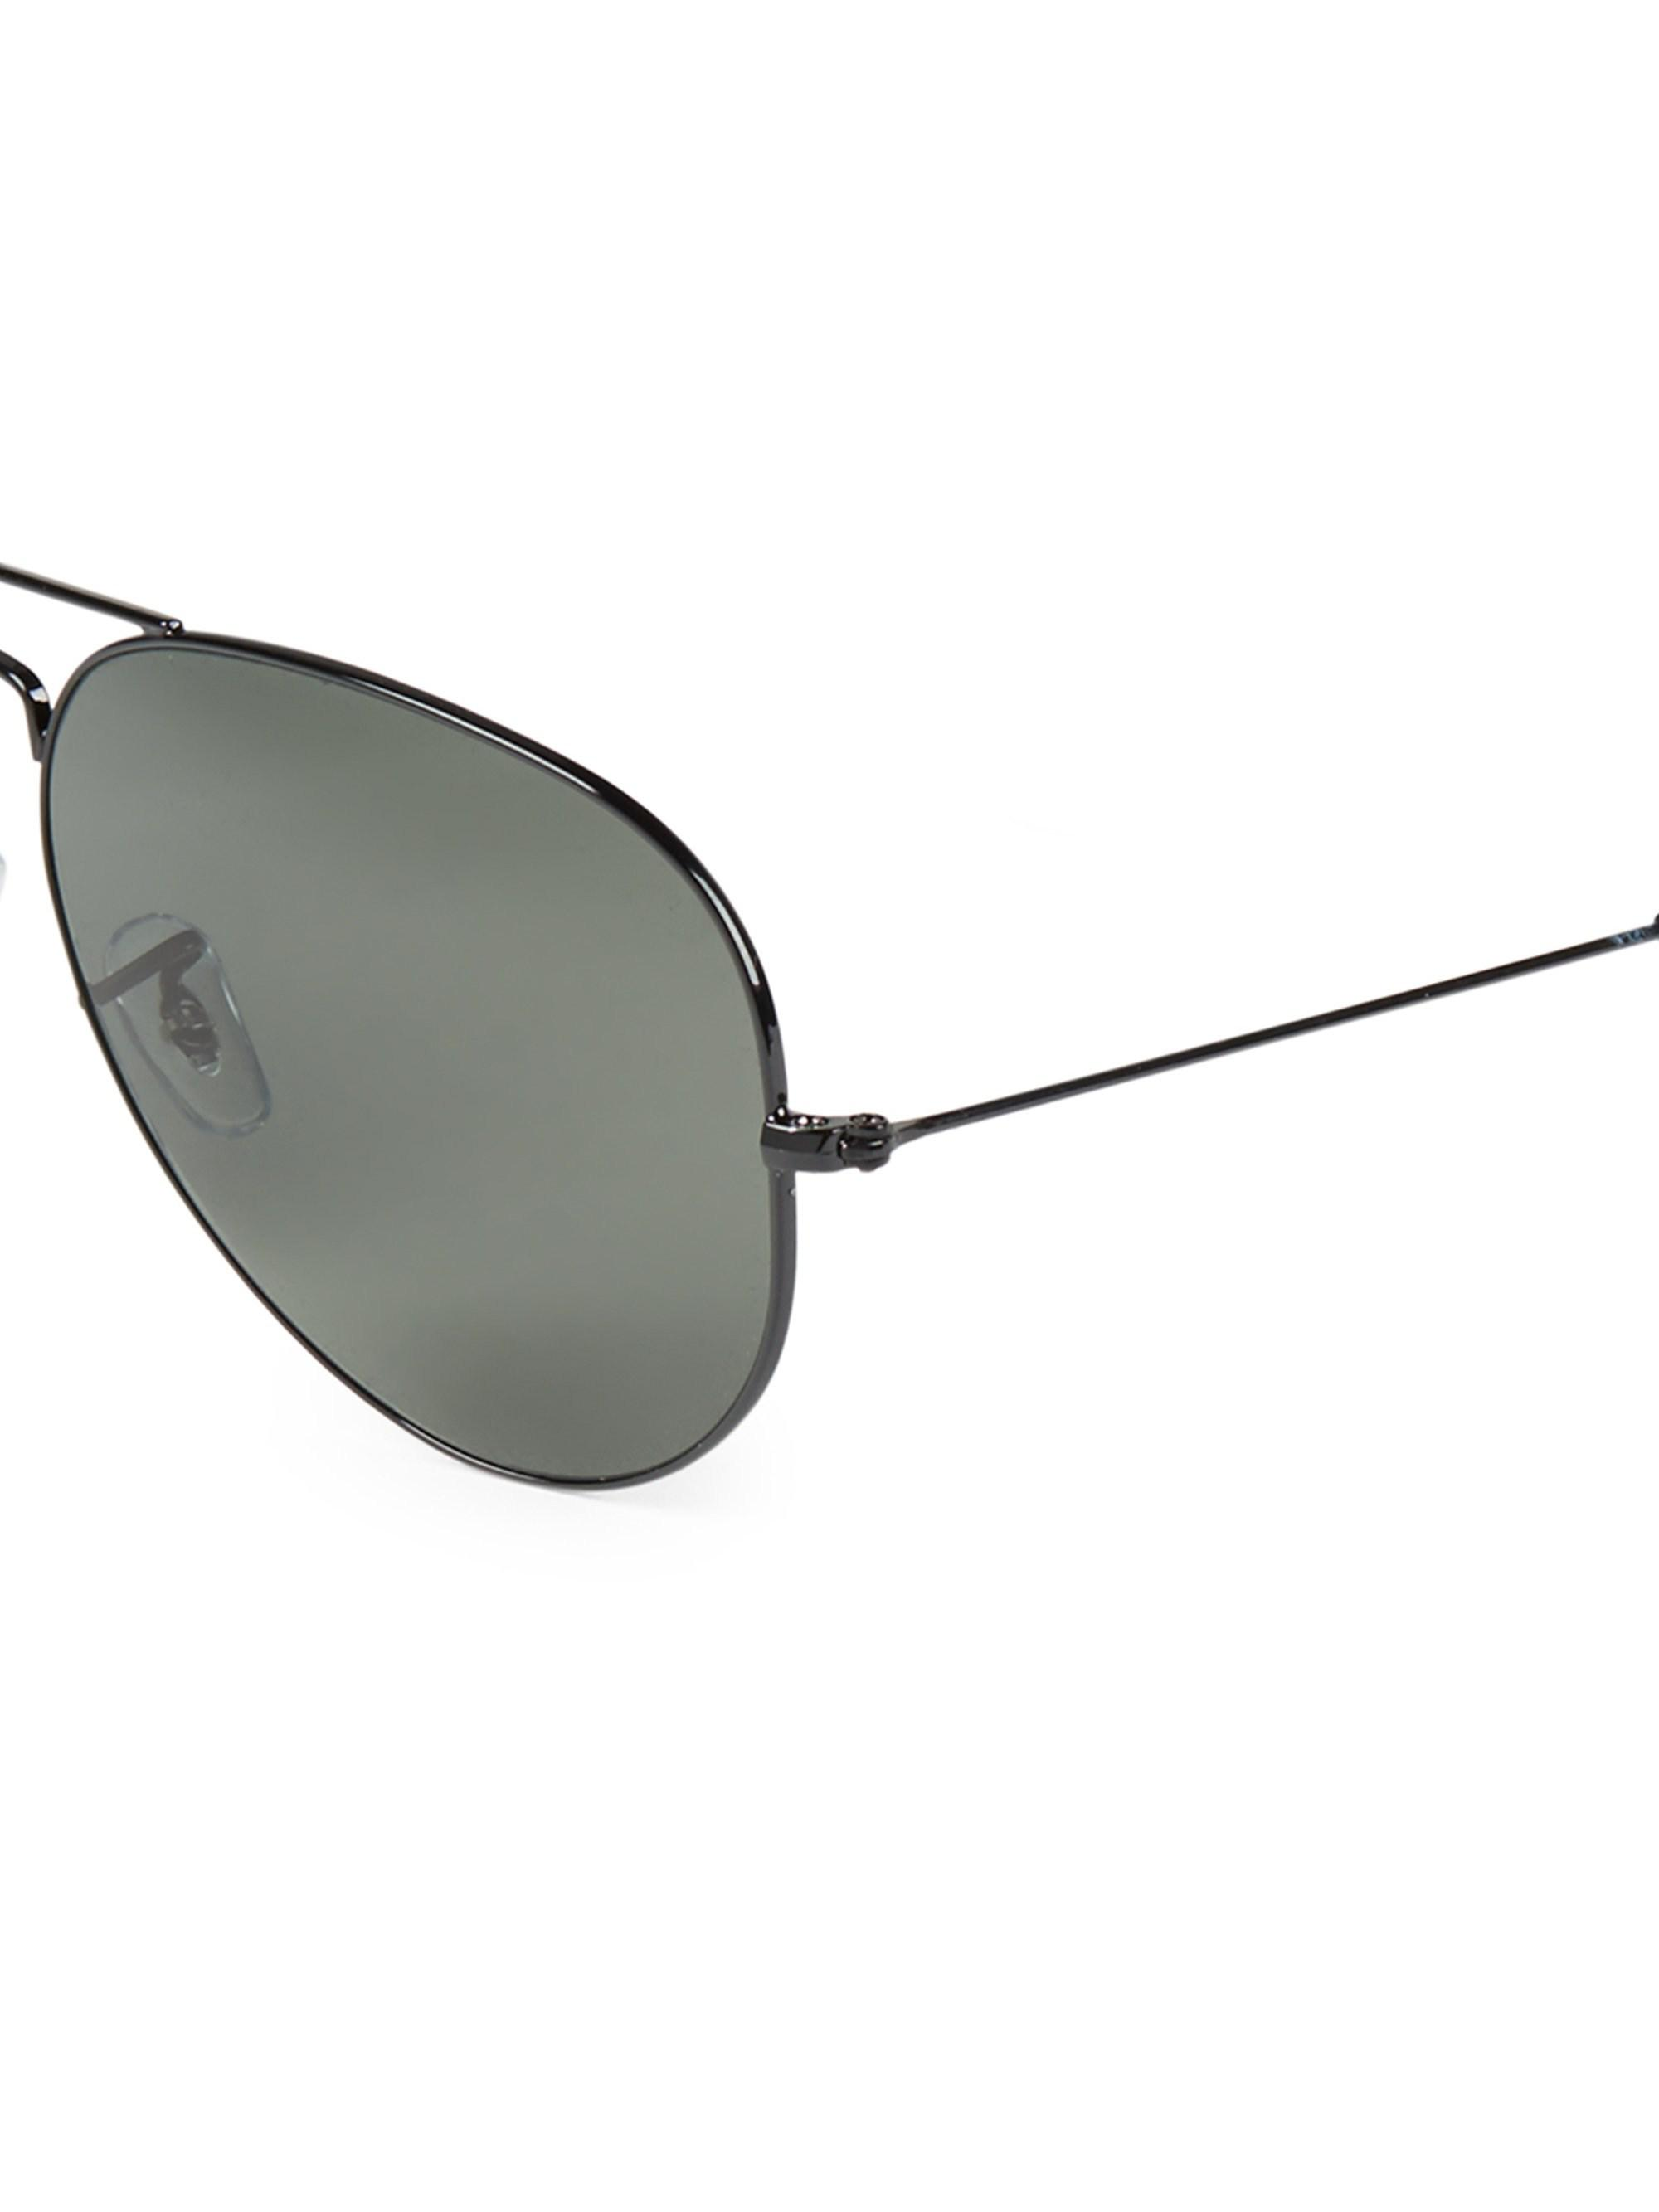 ffbb2db8ddd Ray-Ban Aviator Polarized Sunglasses in Black for Men - Lyst